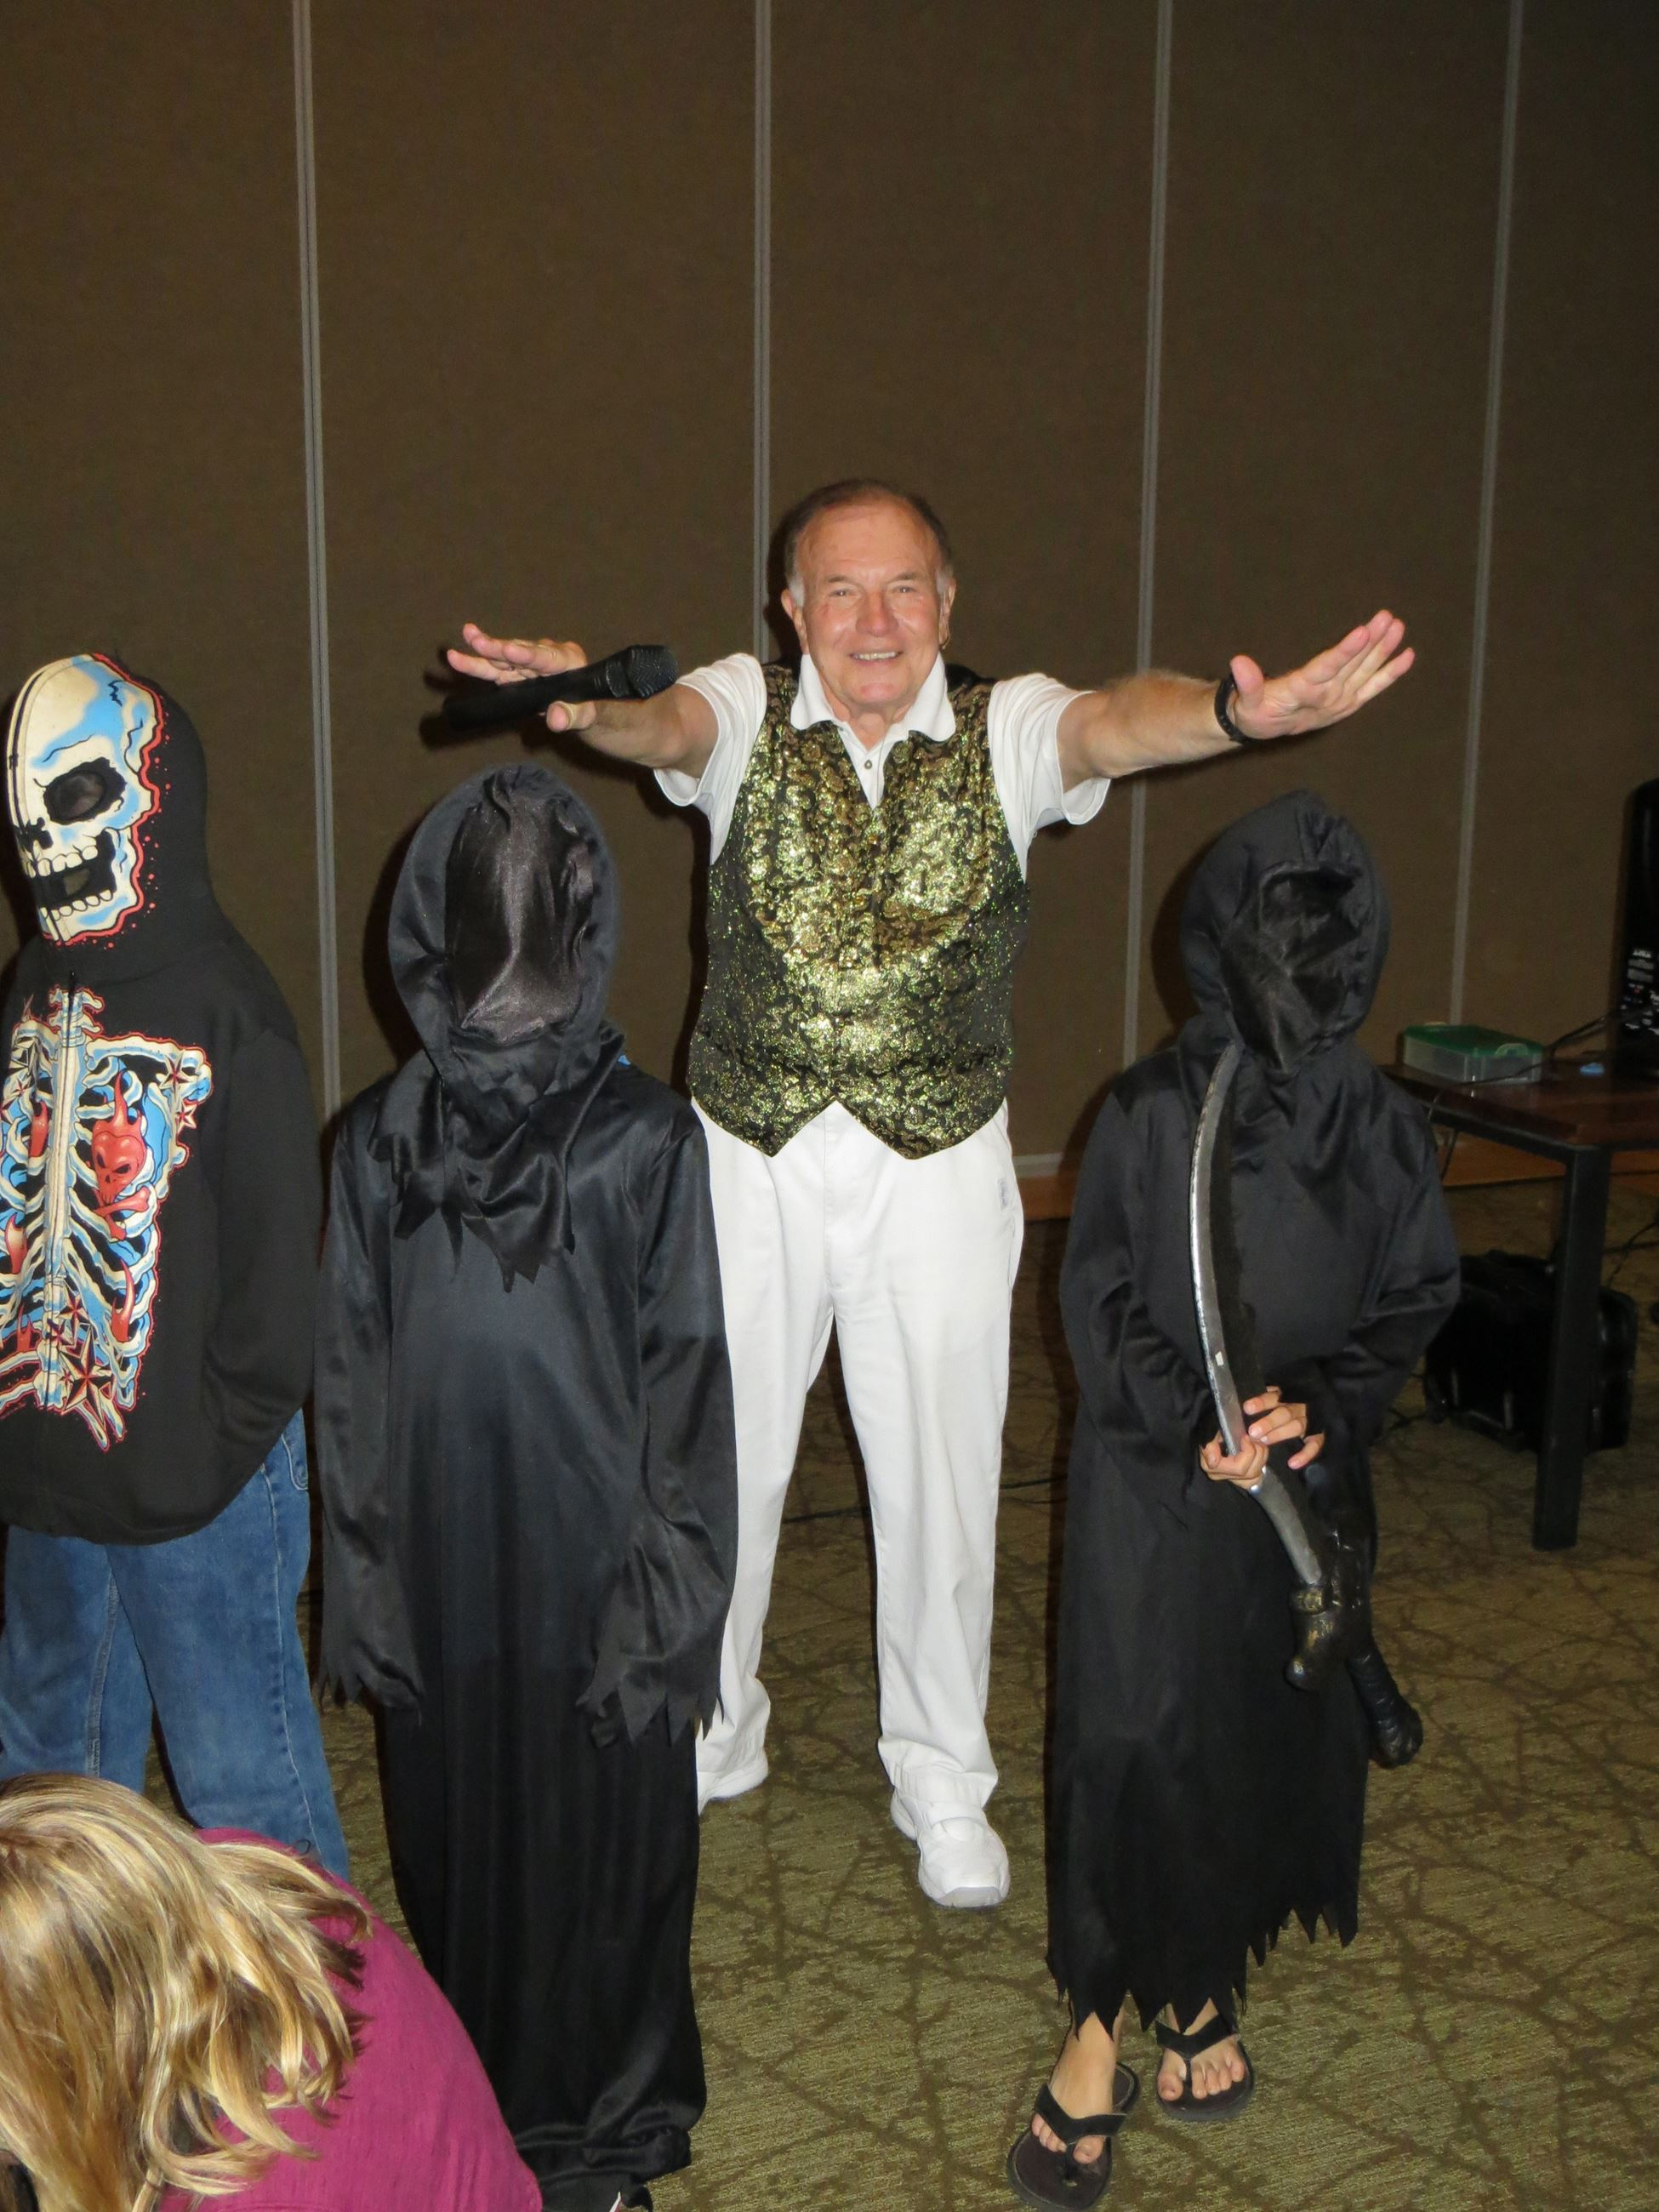 Magician with hands over two kids in phantom costumes